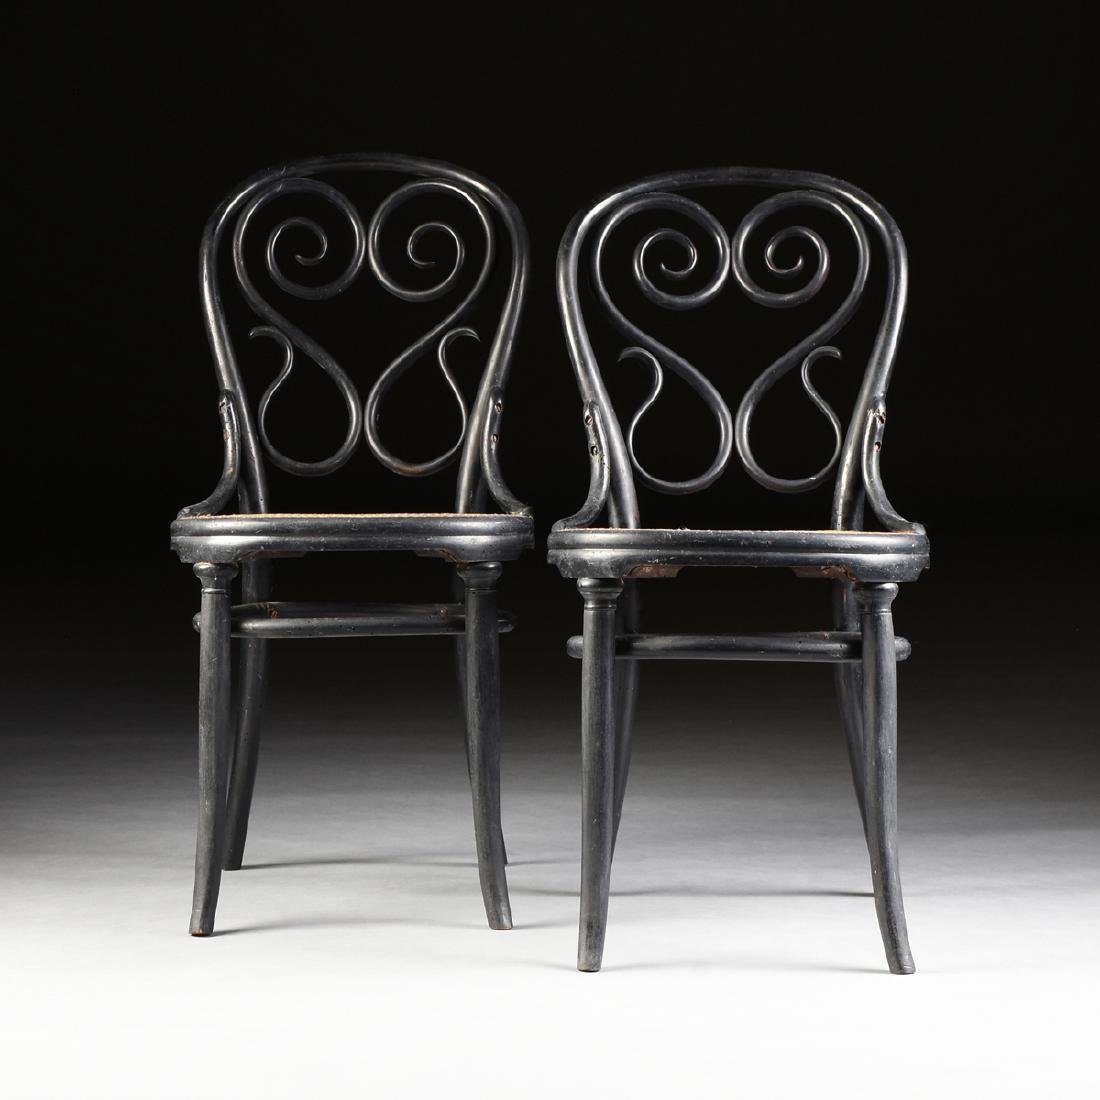 A PAIR OF ART NOUVEAU GEBRUDER THONET EBONIZED BEECH